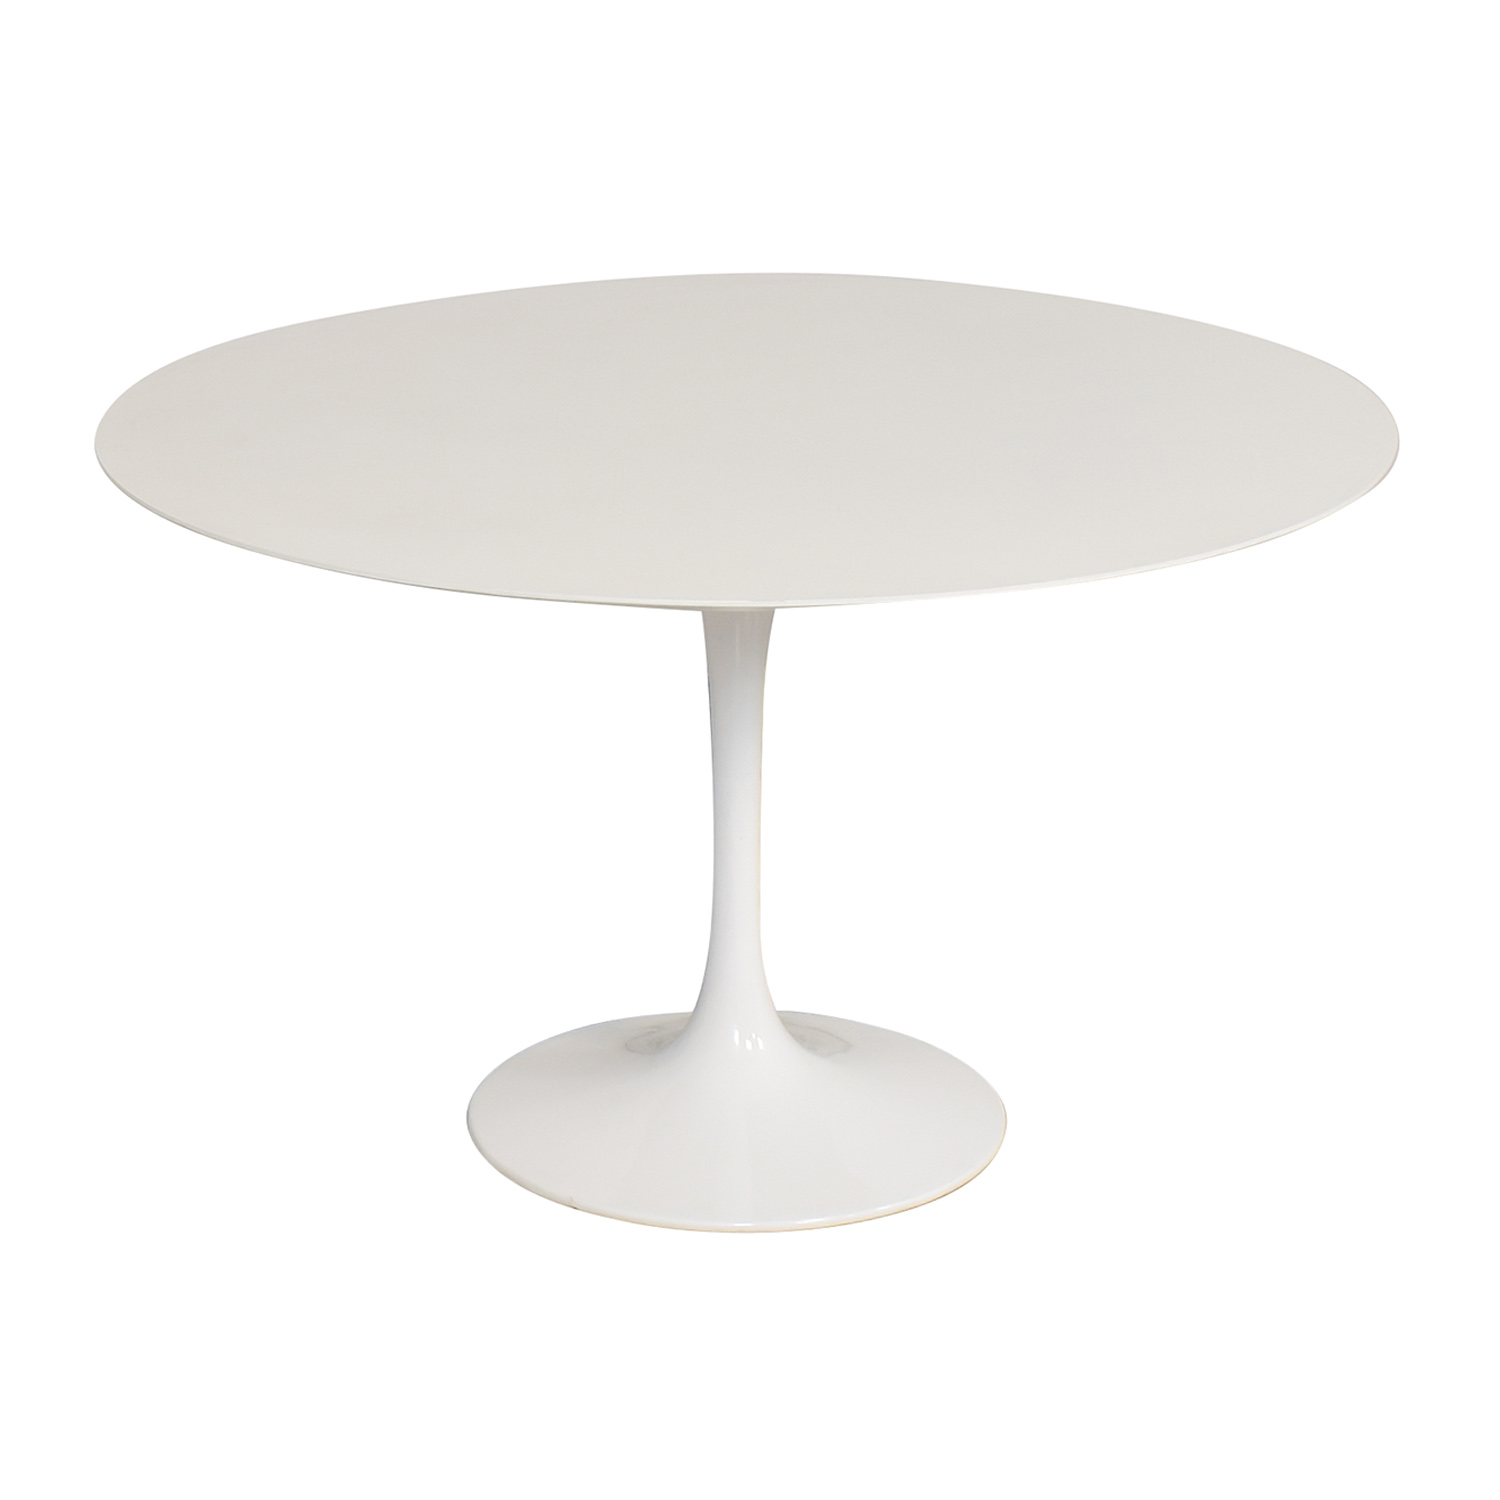 Corrigan Studio Corrigan Studio Angelica Dining Table Dinner Tables